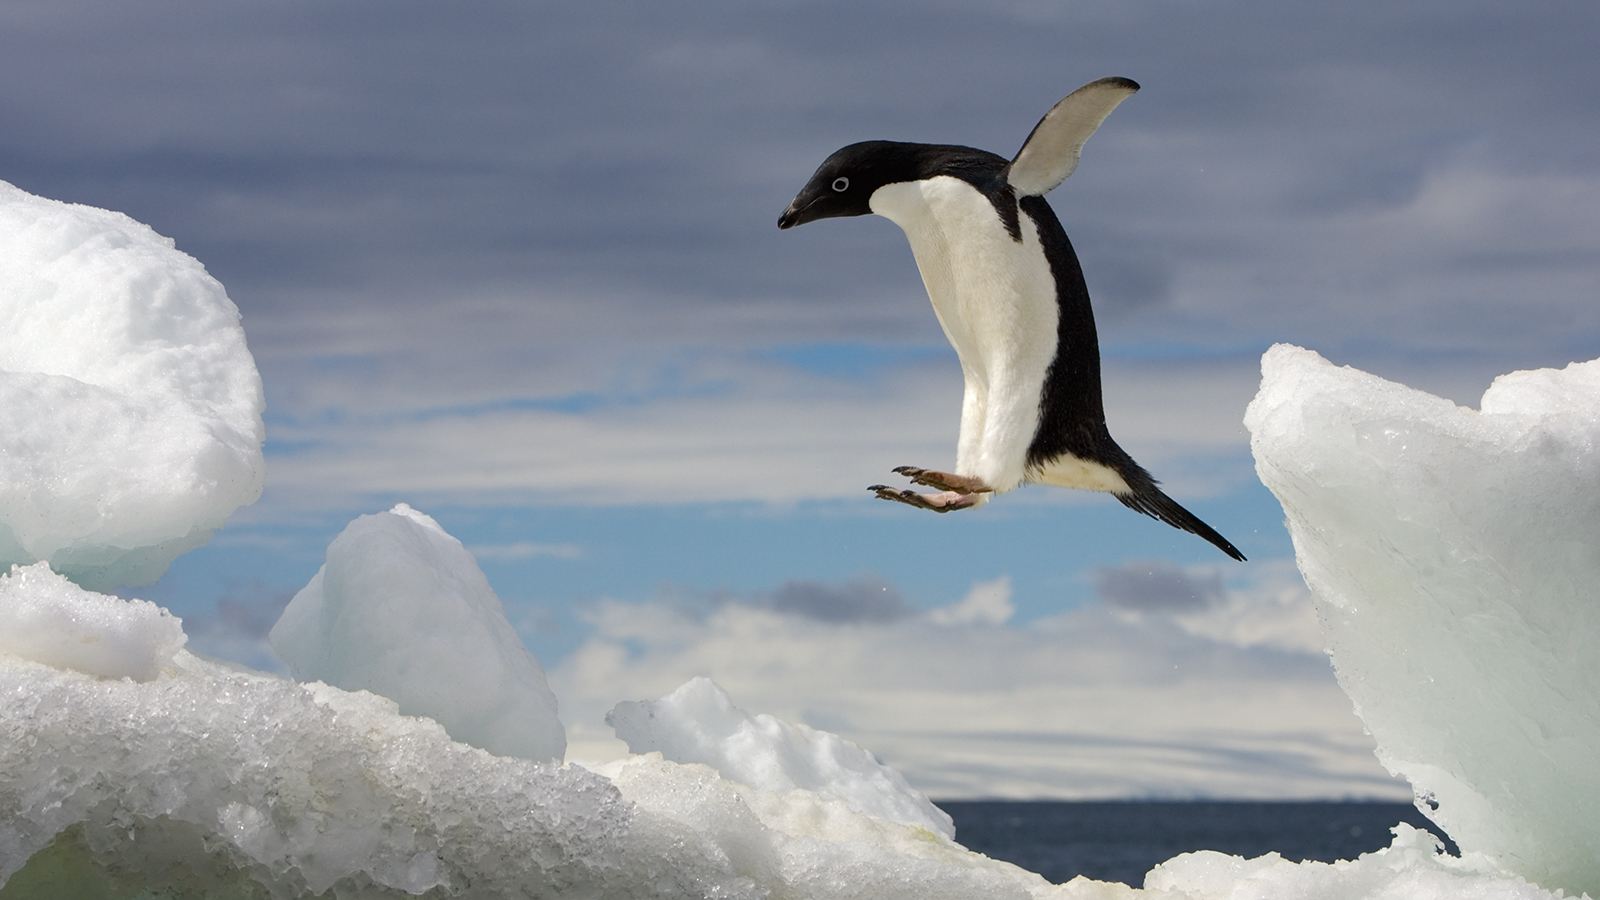 penguin desktop wallpapers wallpapers high quality | download free